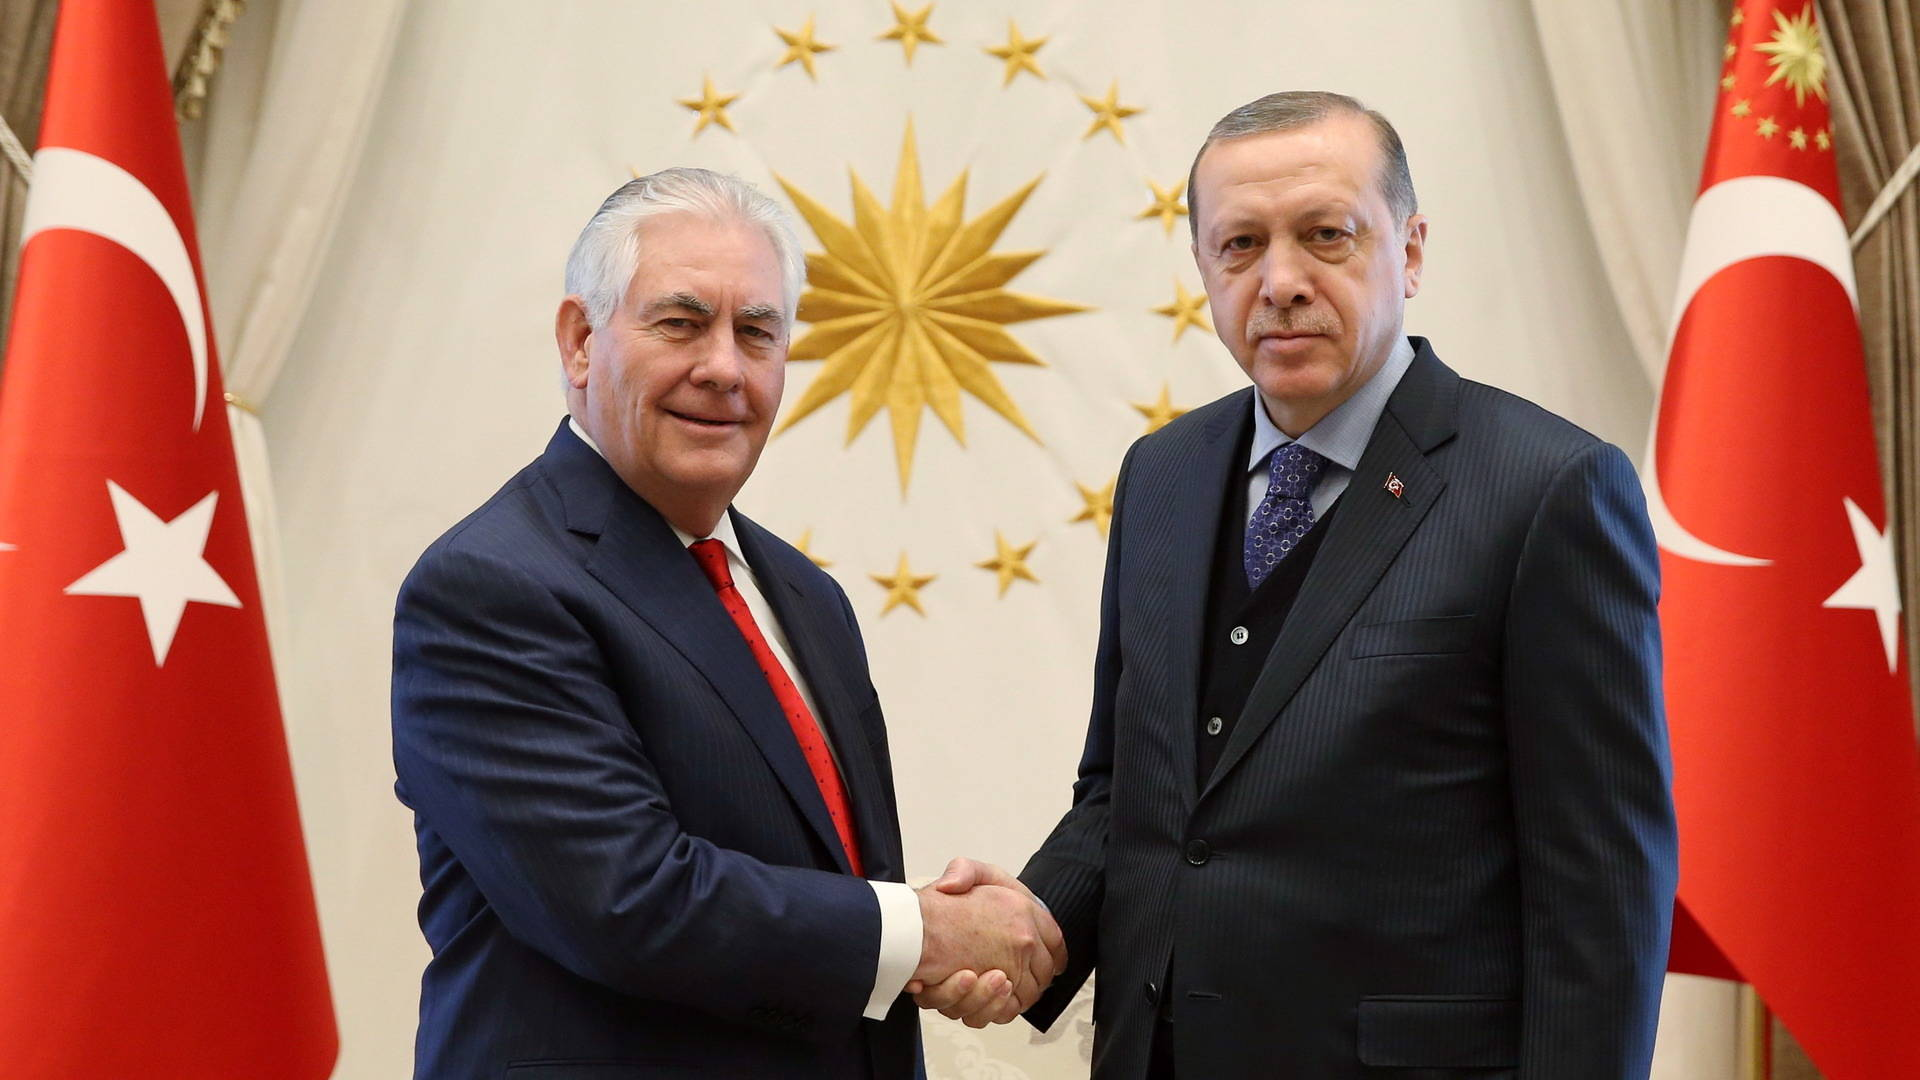 https://www.democracynow.org/images/headlines/08/35908/full_hd/H04_Tillerson_Erdogan.jpg